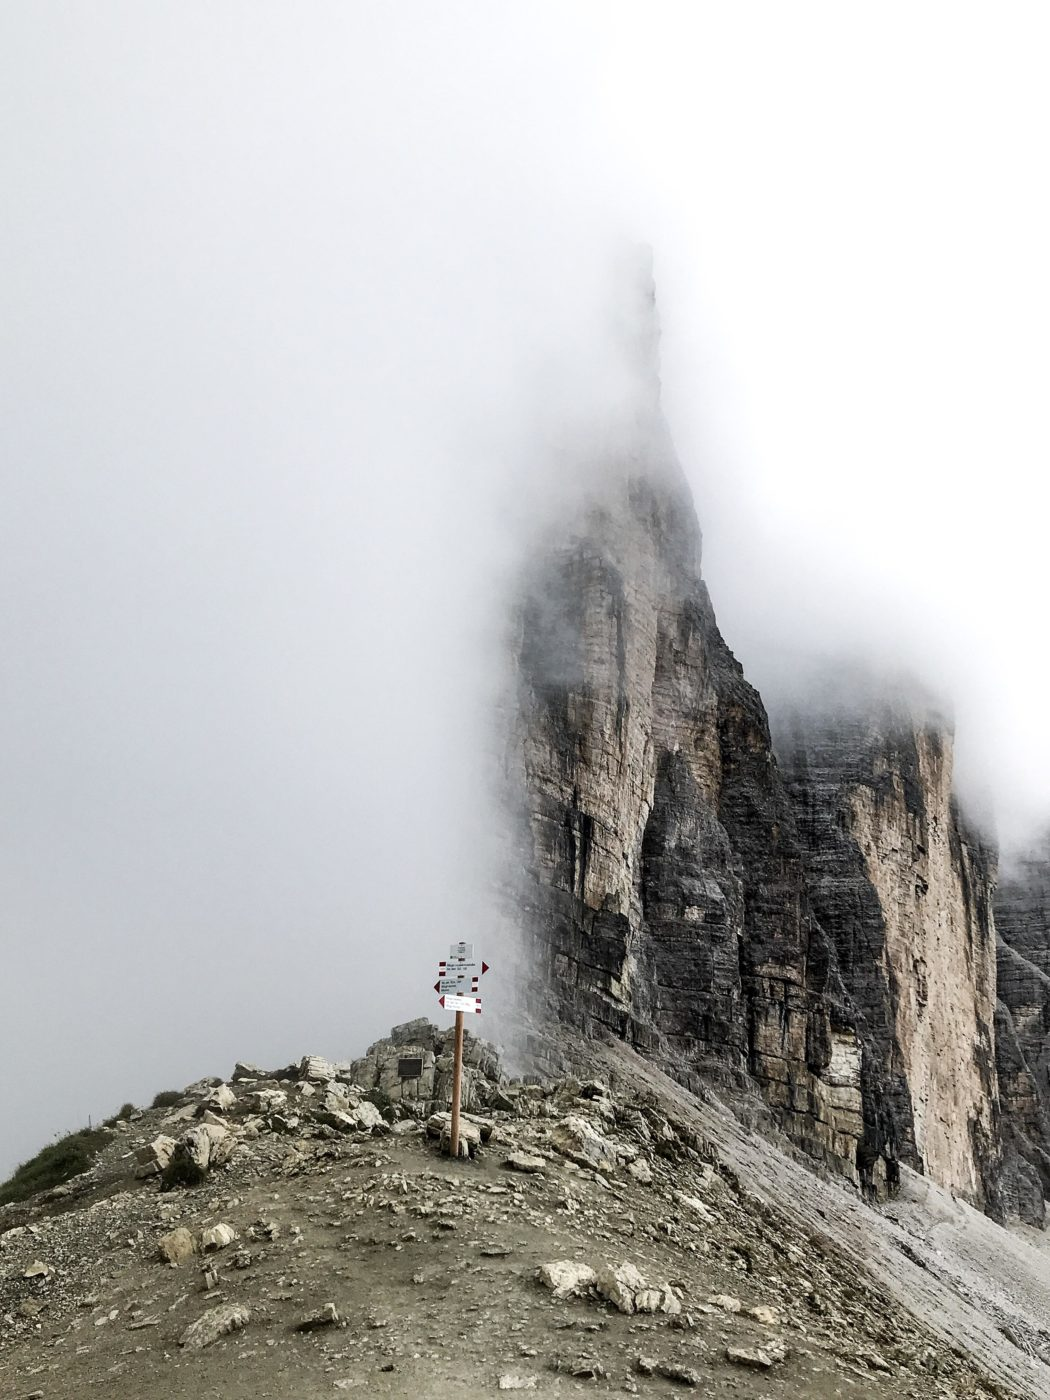 On the way to Tre Cime, Drei Zinnen in the Dolomites